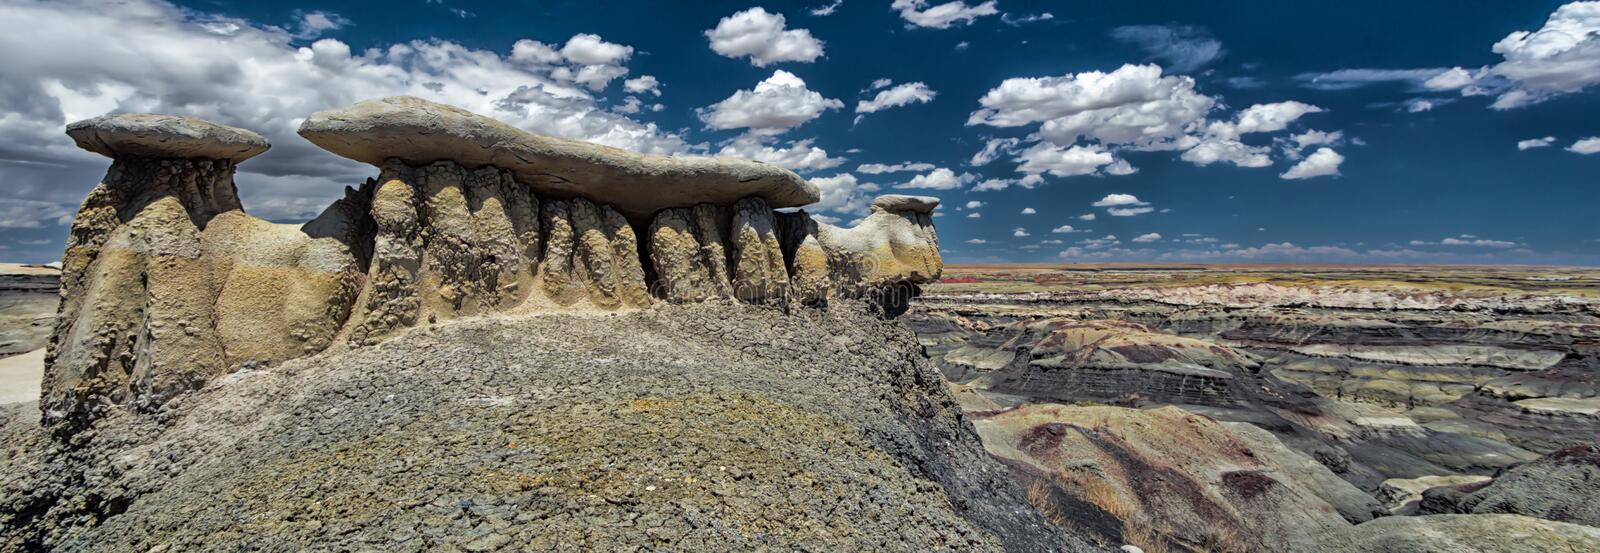 Panorama rock desert landscape in northern New Mexico stock photo